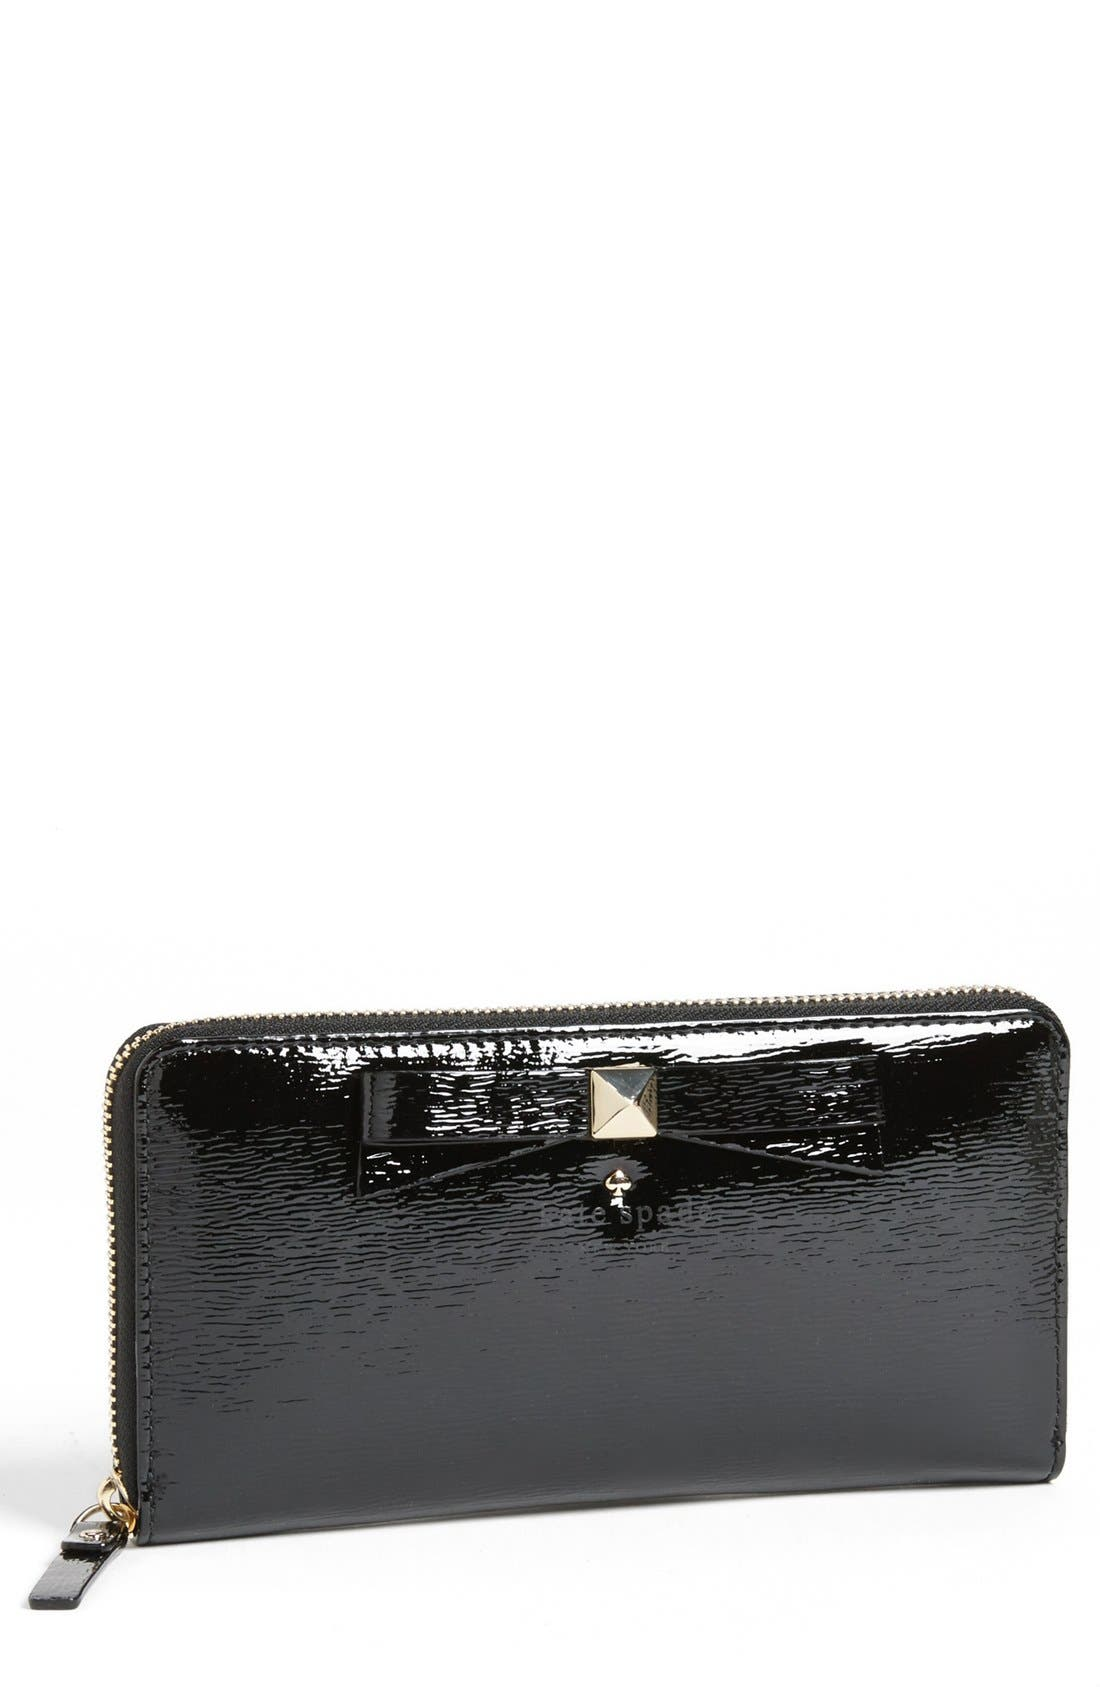 Alternate Image 1 Selected - kate spade new york 'beacon court lacey - large' leather wallet